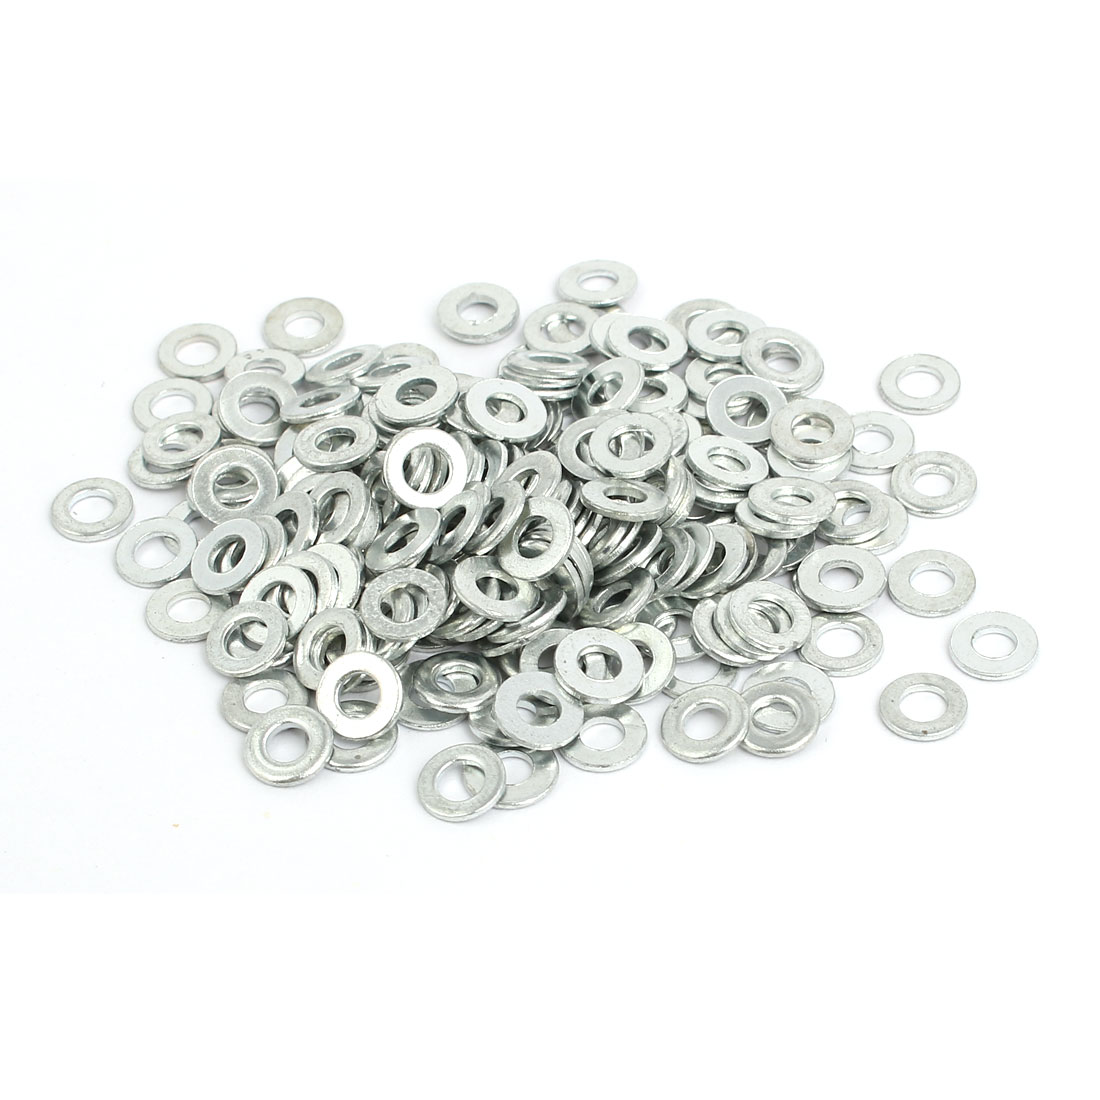 M3 Carbon Steel Zinc Plated Flat Pads Washer Gasket Spacer Silver Tone 200pcs